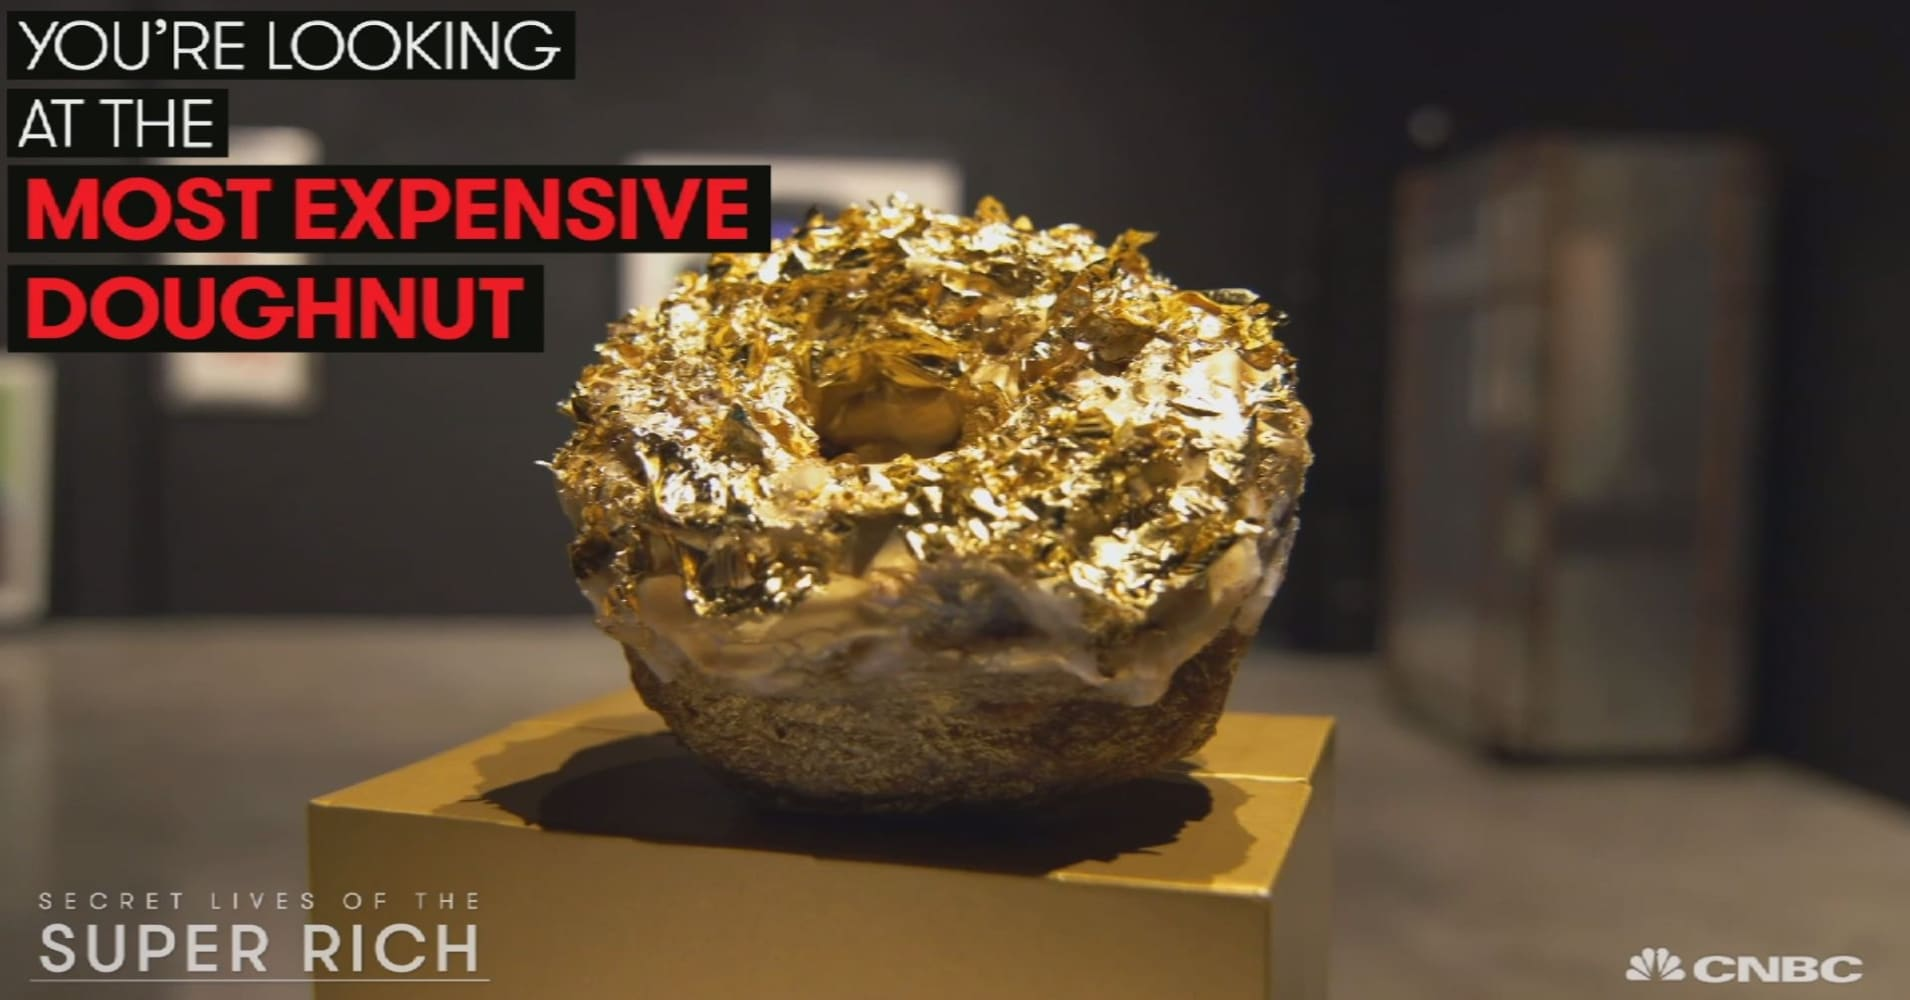 expensive jewelry more blame to investment and is gold getting